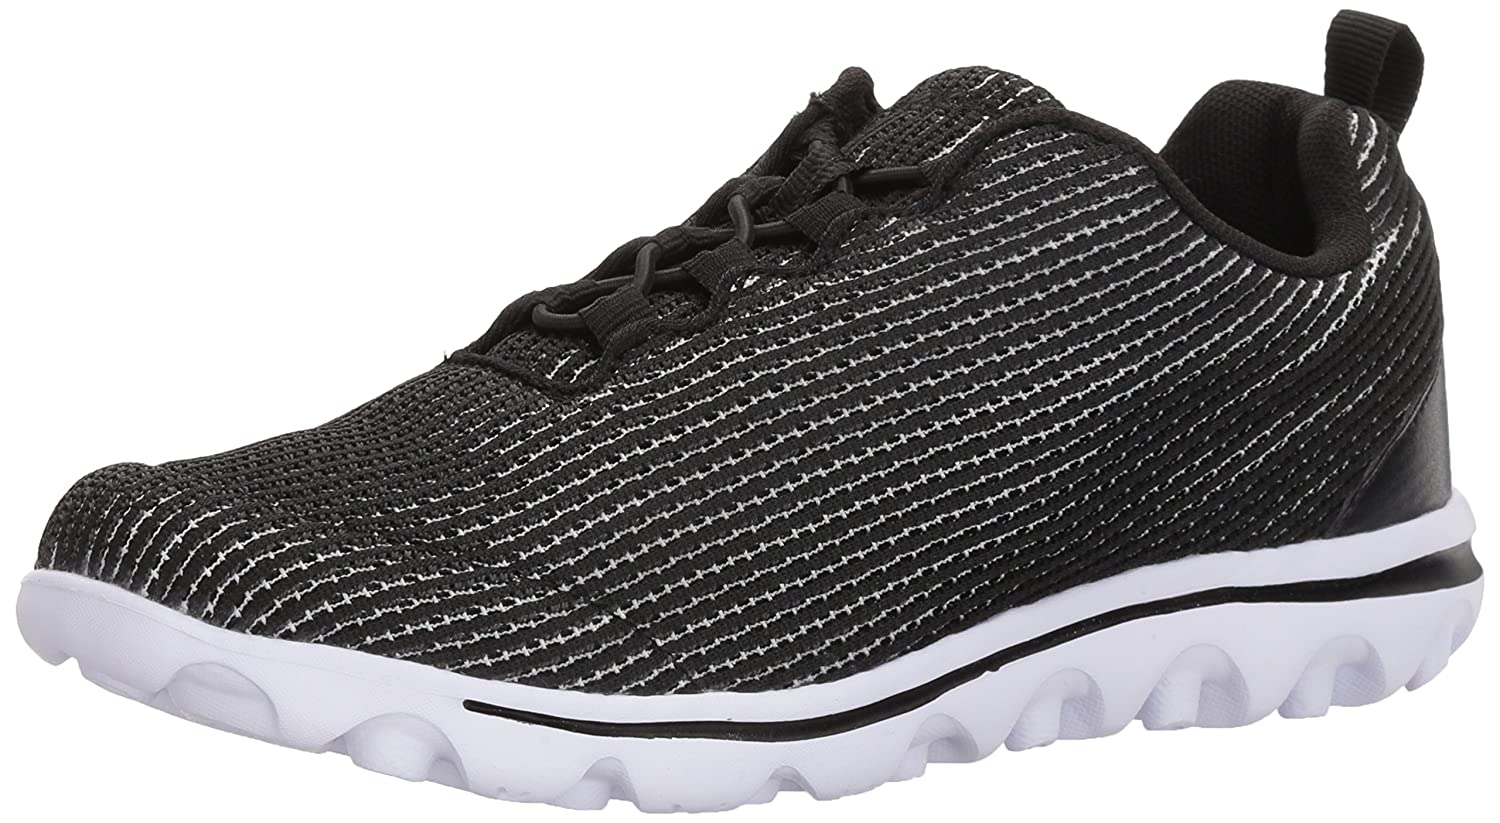 Propét Women's TravelActiv Xpress Sneaker B072JN6Y5X 7 W US|Black/White